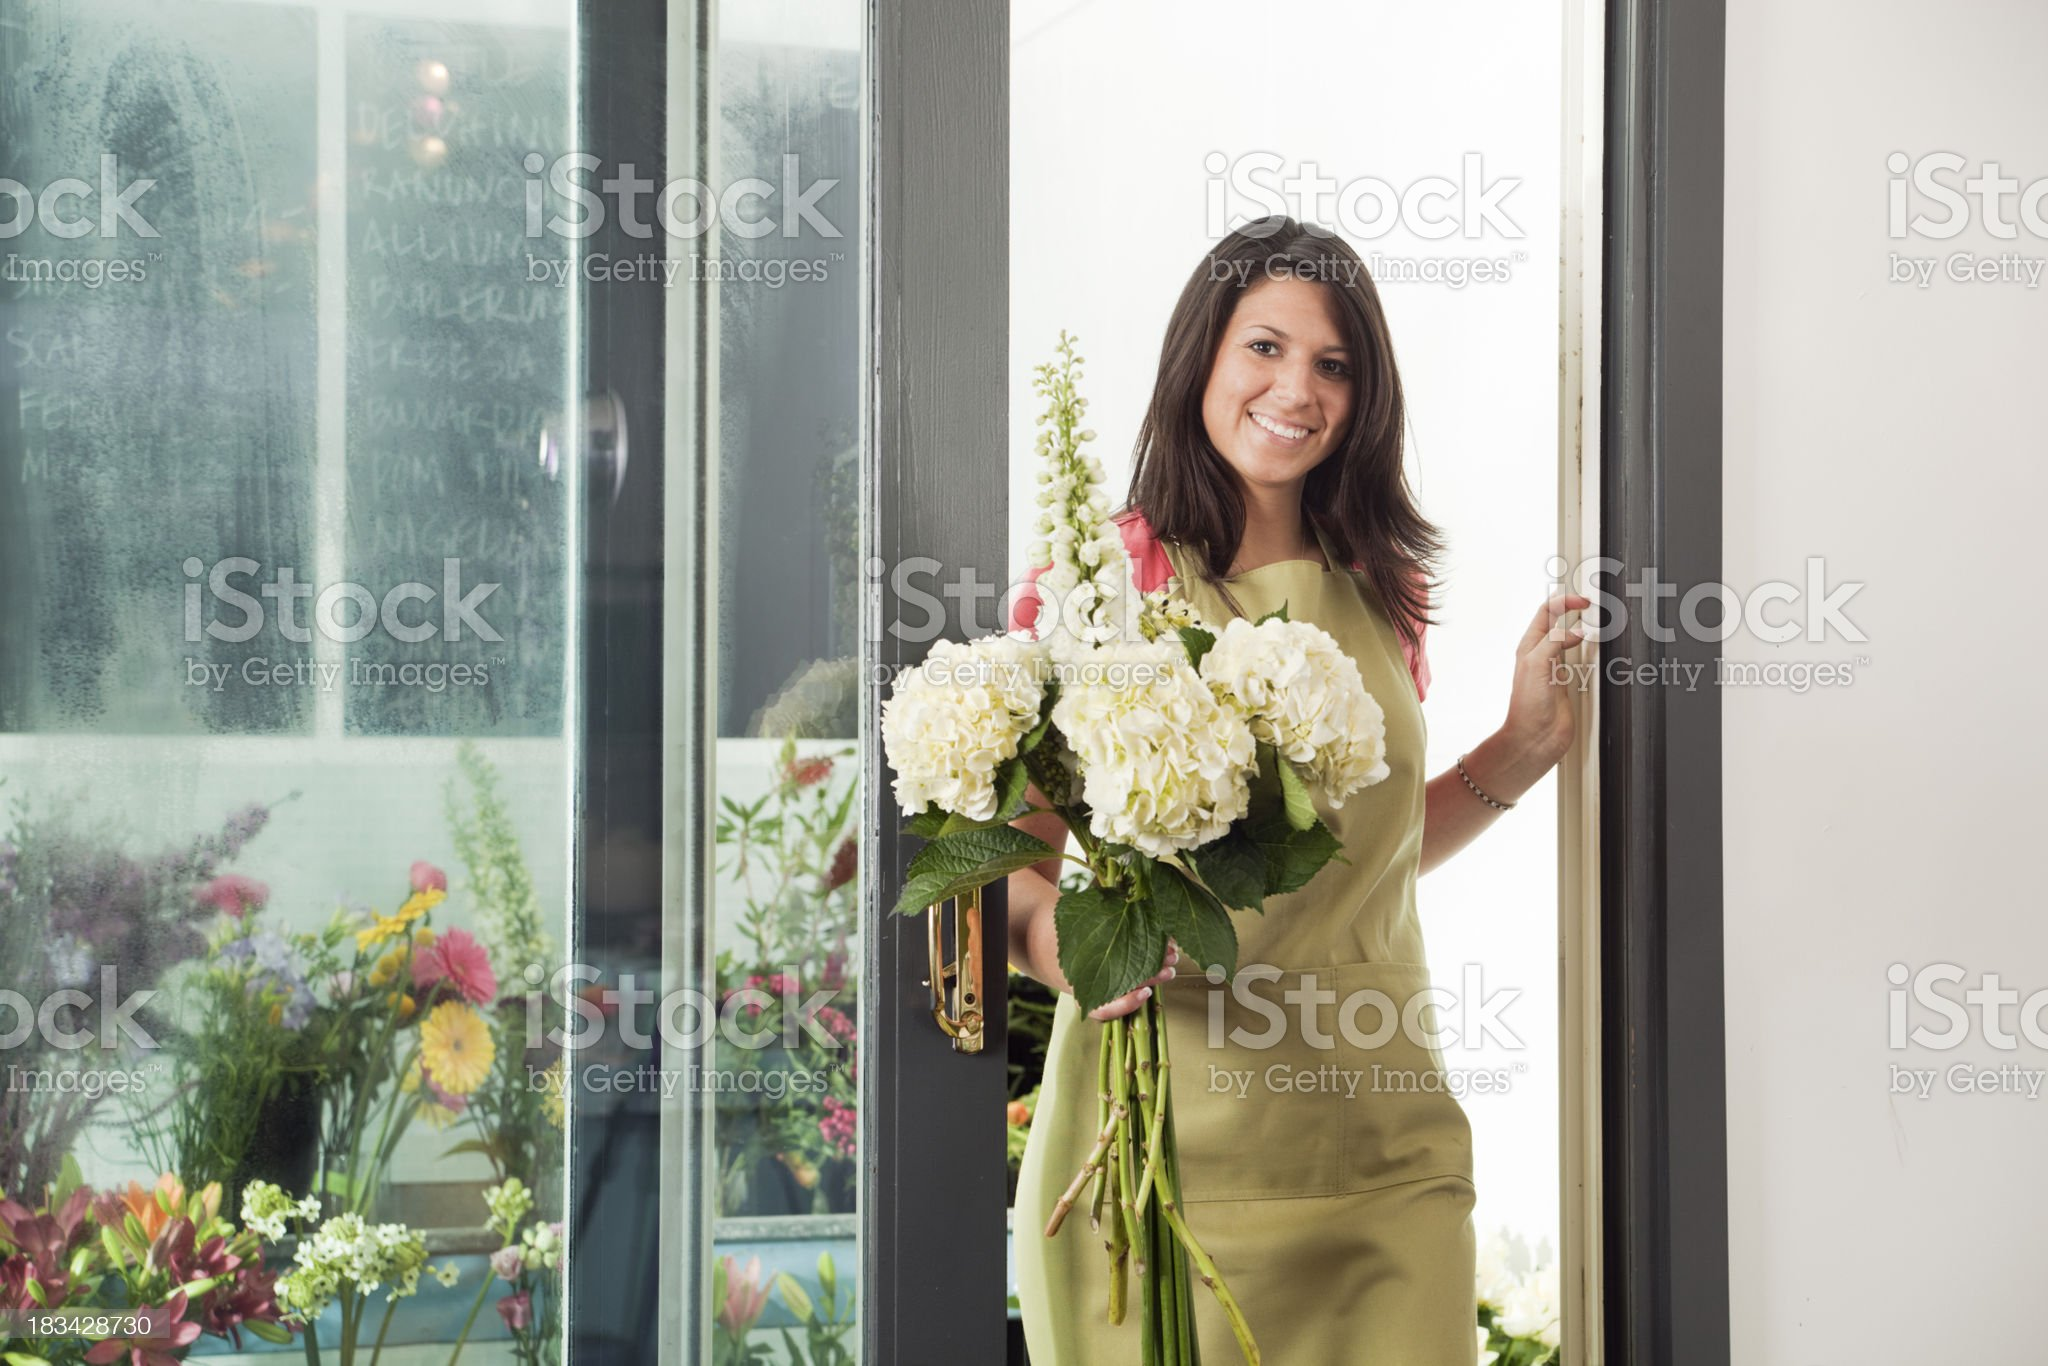 Woman Florist at Work, Exiting Refrigerated Cooler with Flower Bouquet royalty-free stock photo